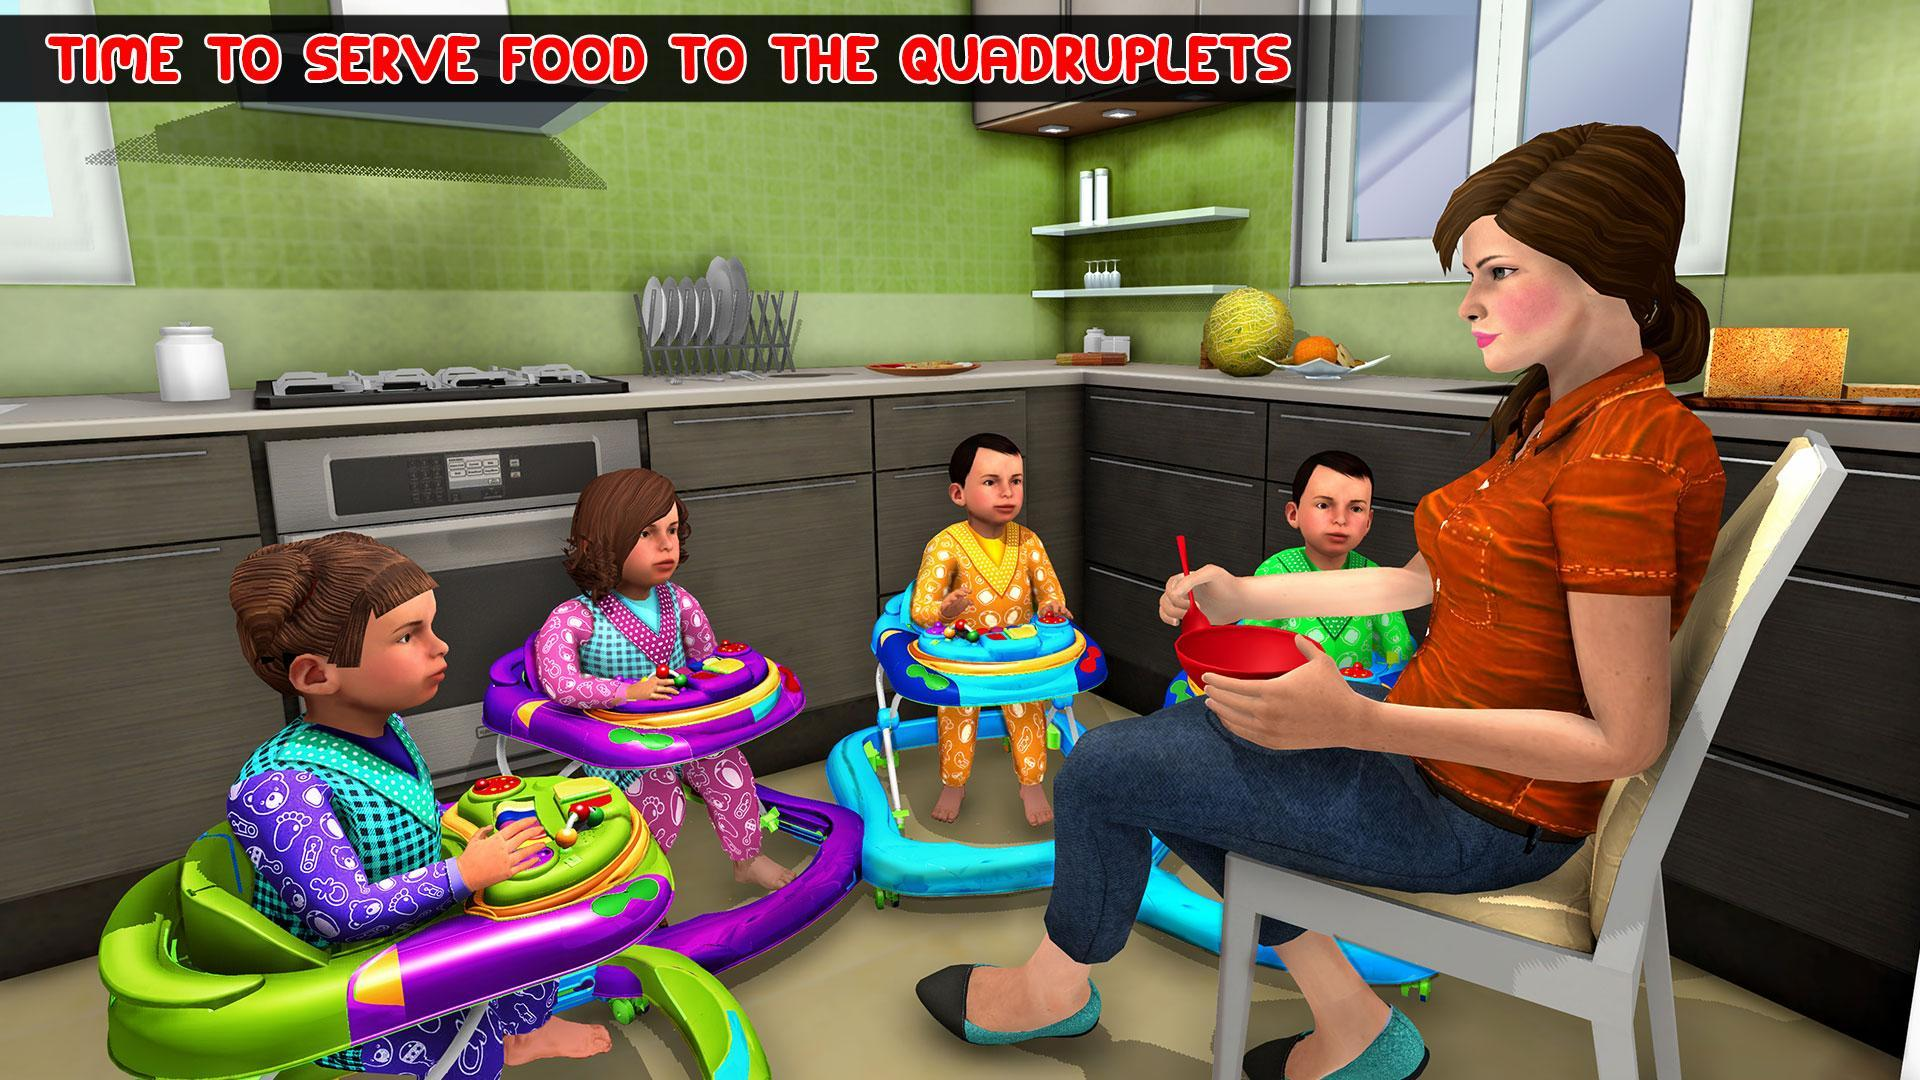 Virtual Mother Baby Quadruplets Family Simulator 1.0.9 Screenshot 3